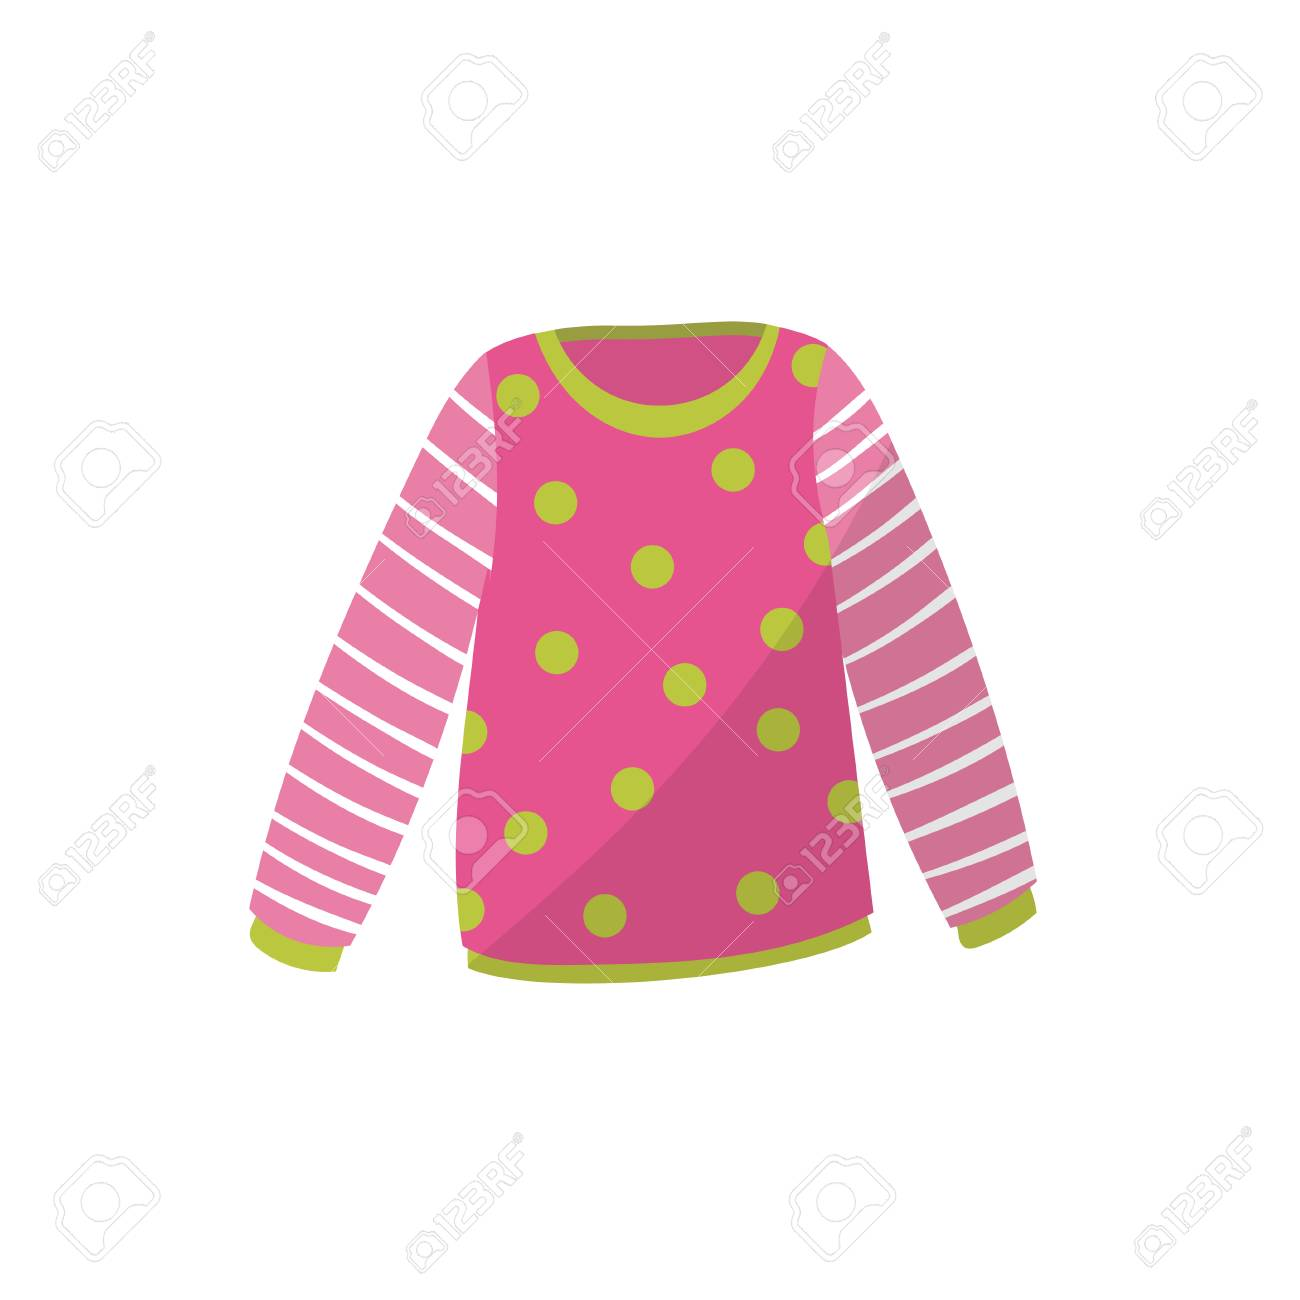 cc2064aed Pink Baby Sweater In Green Polka-dot. Cute Warm Pullover With ...